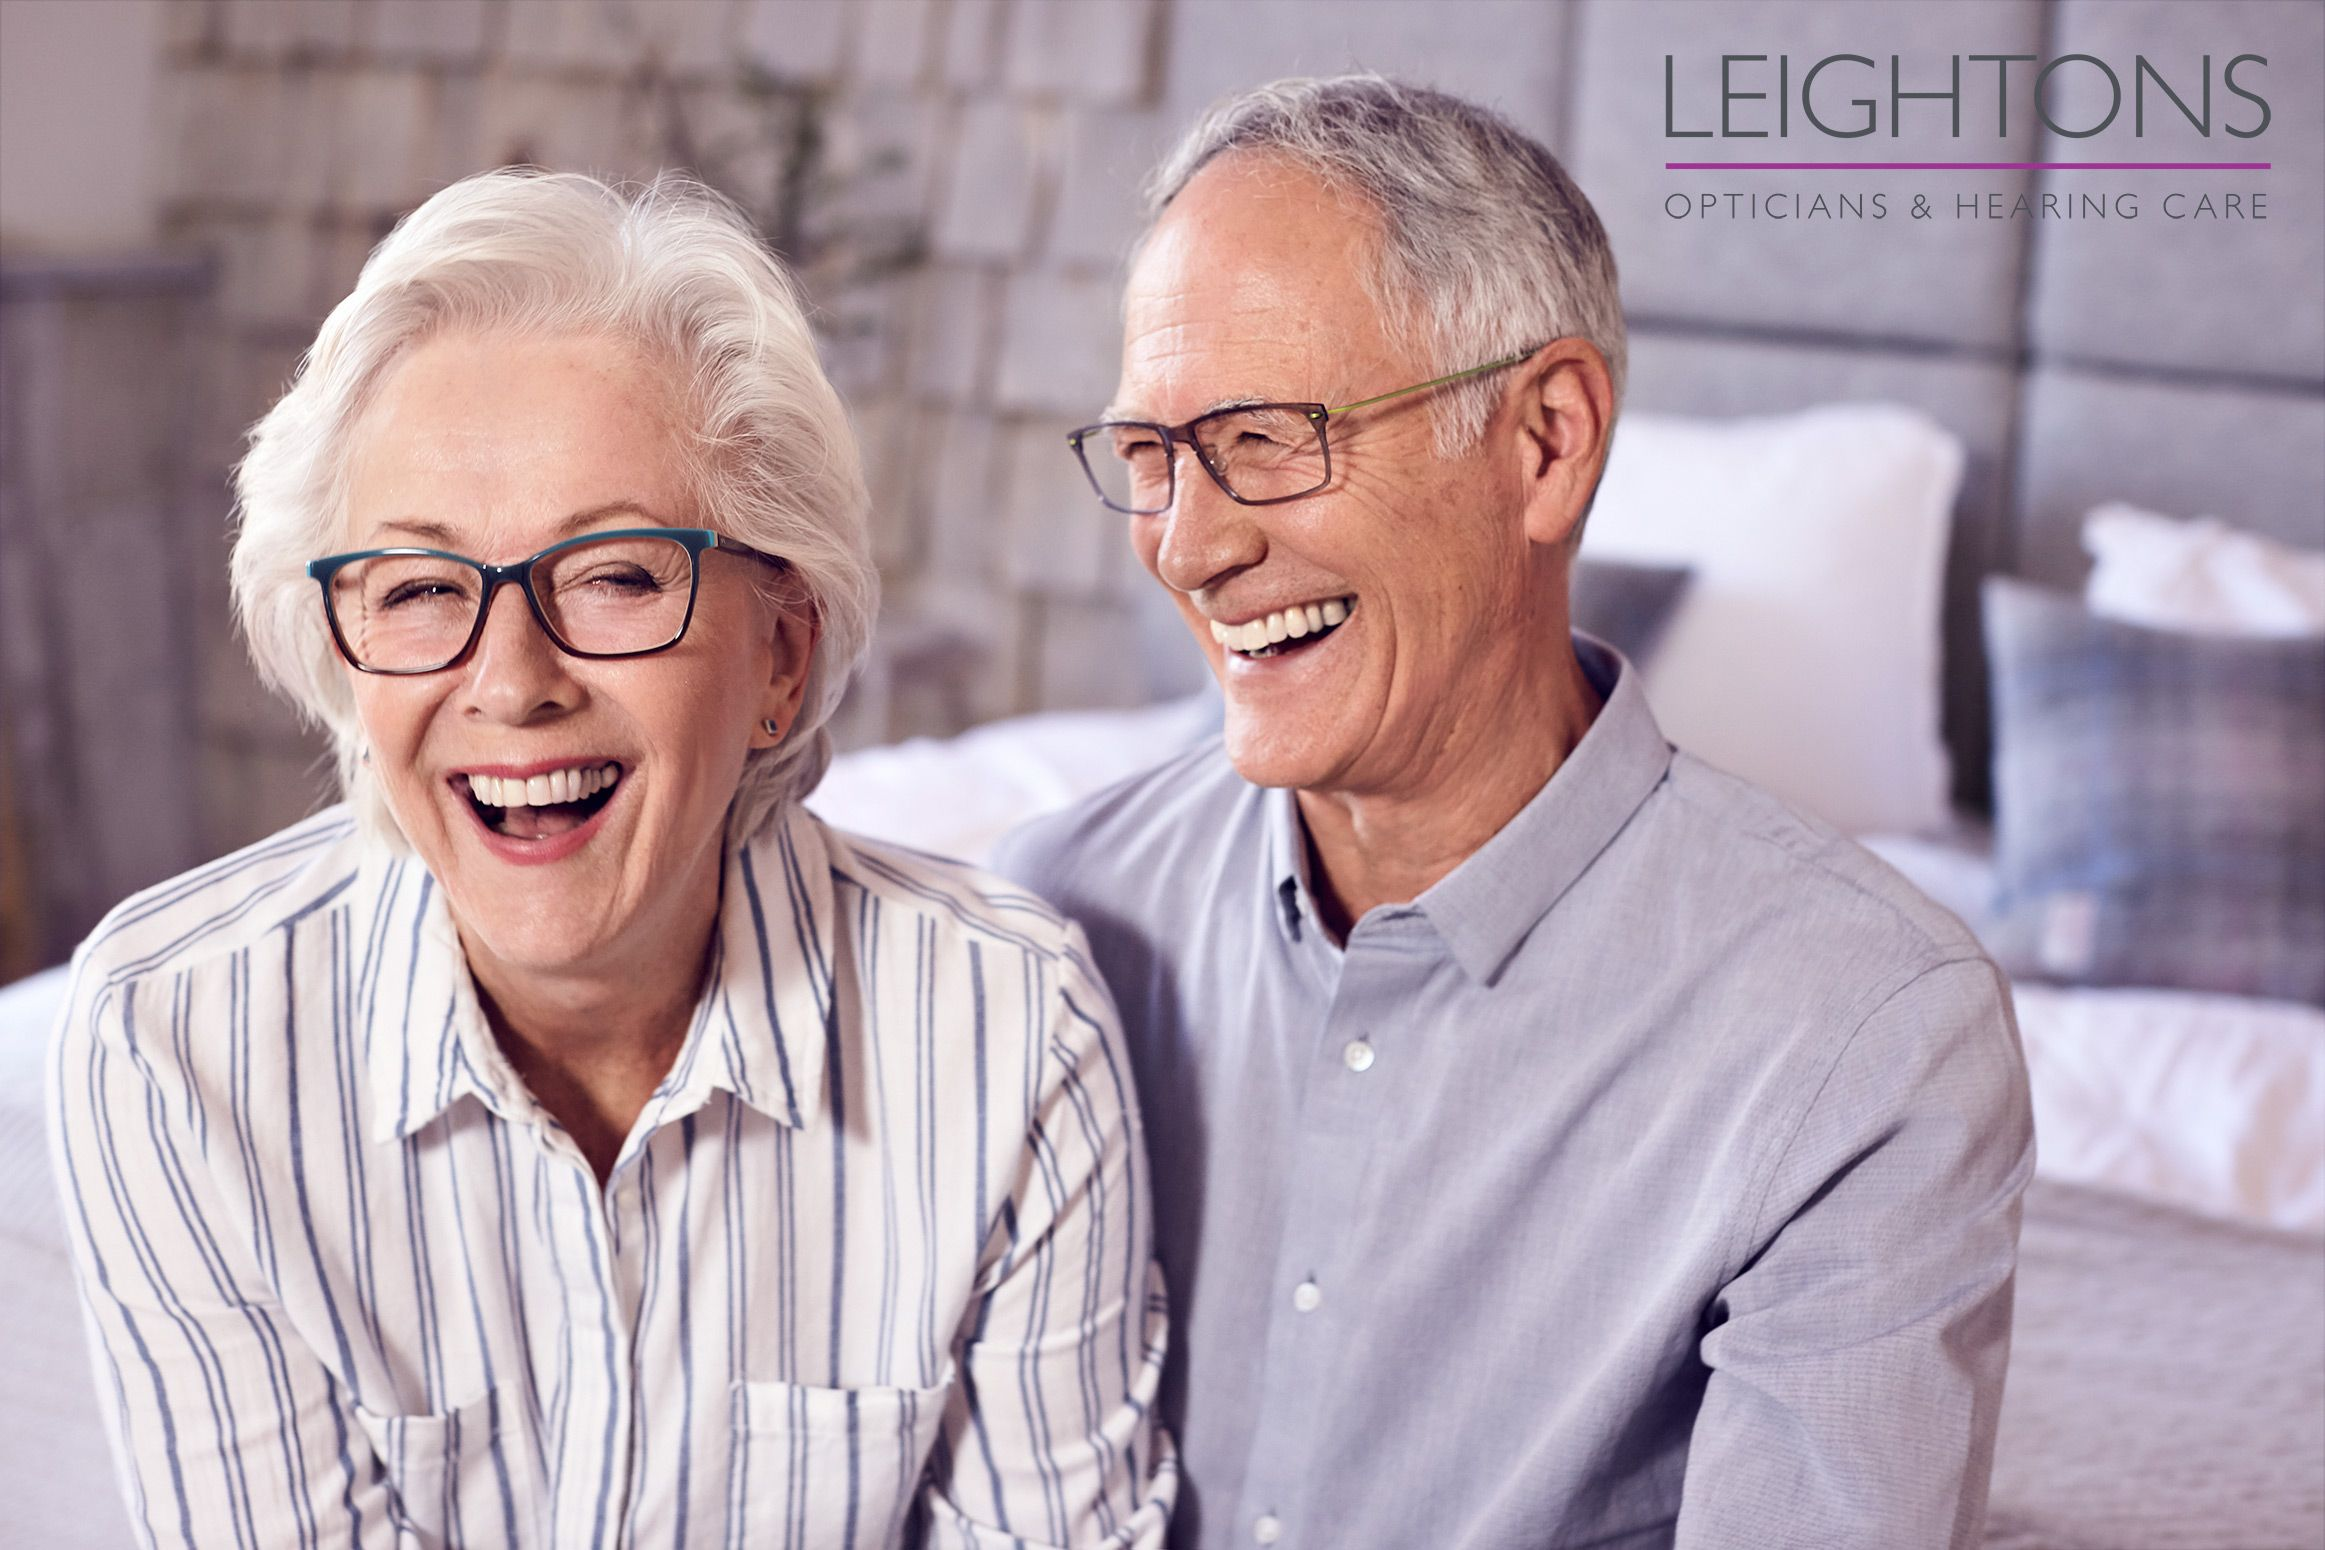 advertising-photographer-london-lifestyle-family-opticians-ruth-rose-6-compressor.jpg